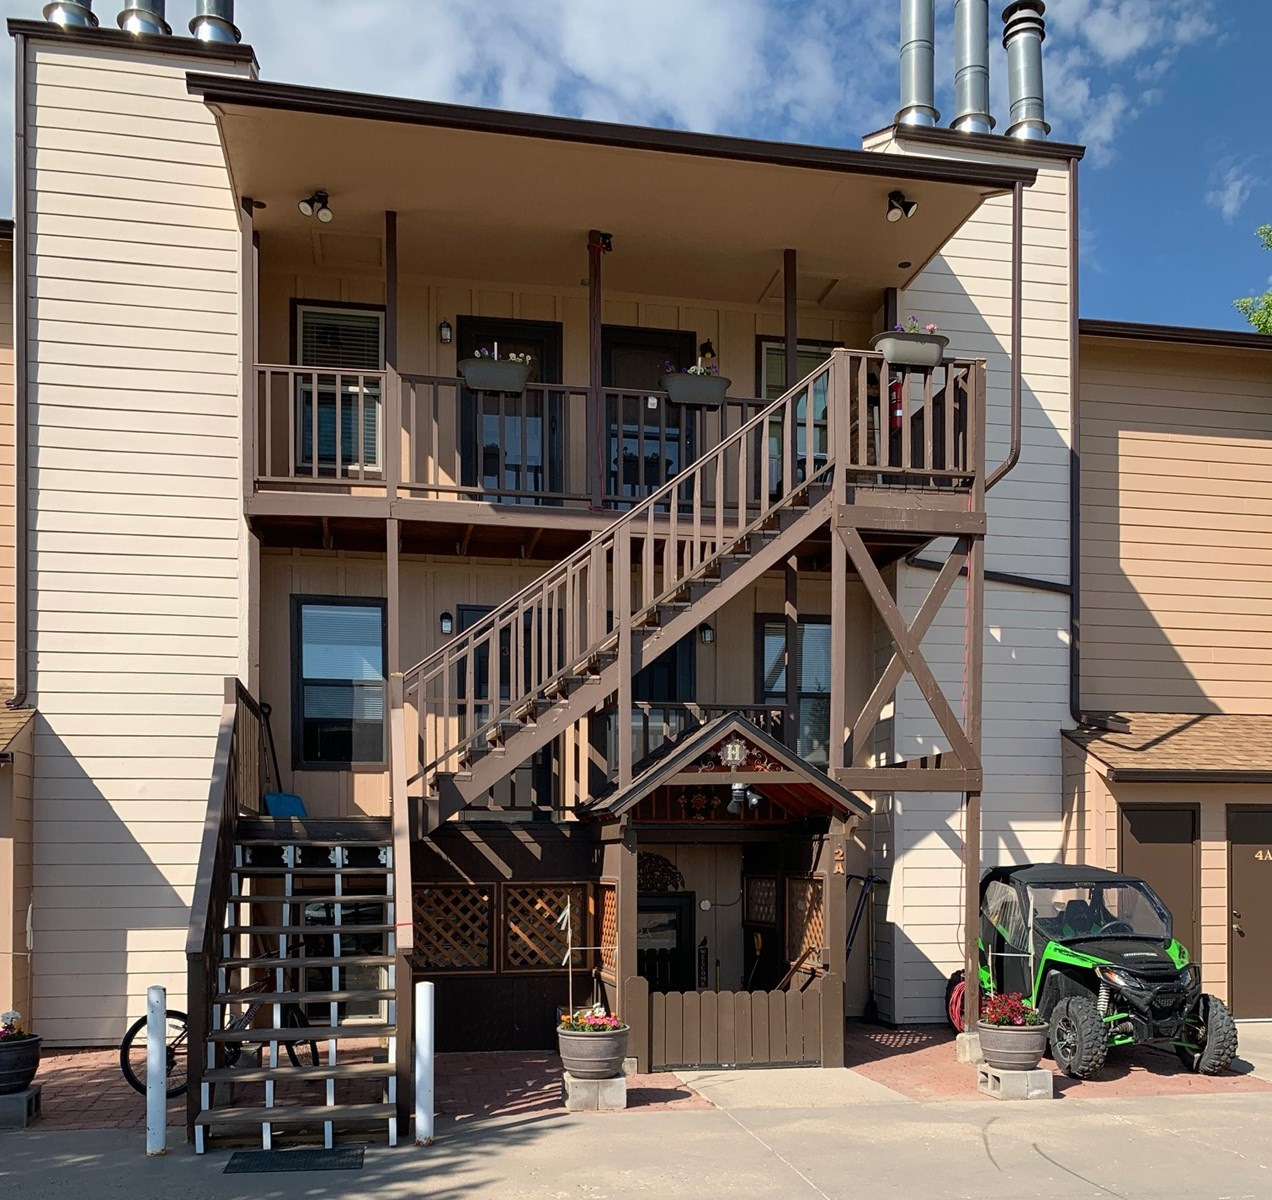 Move-in Ready Furnished Condo in of Silver Cliff, CO